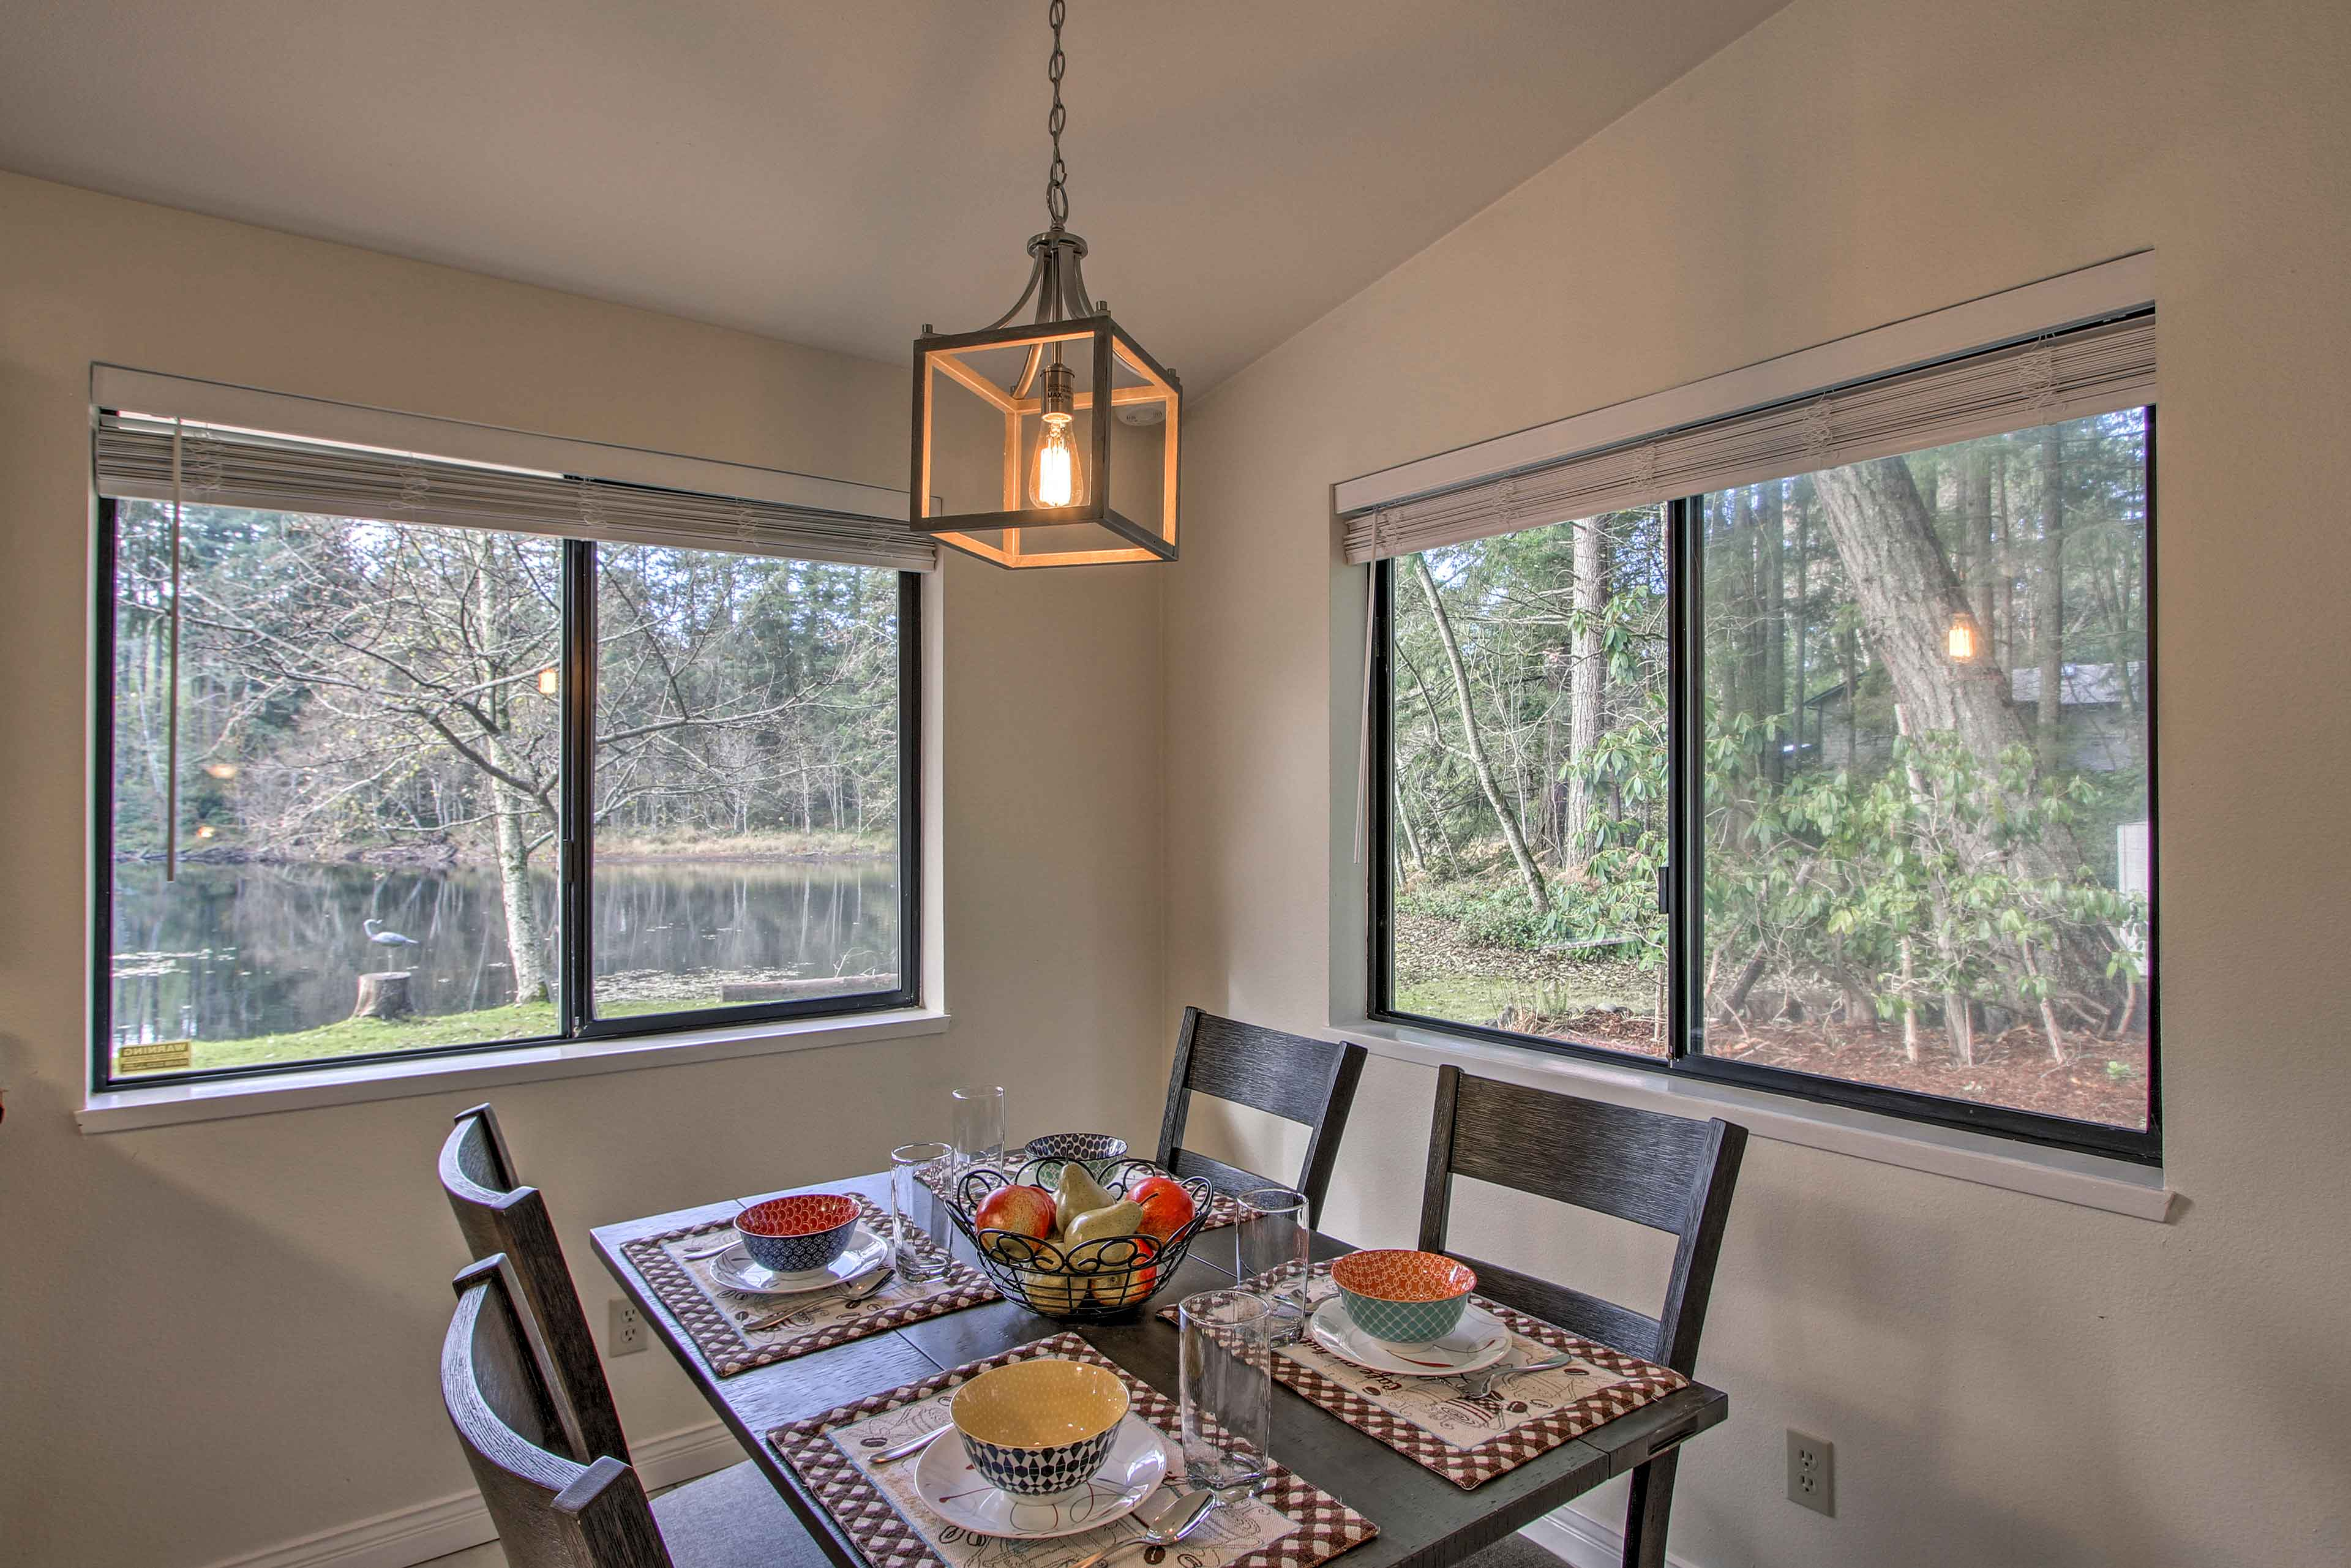 Another dining table with a view of the lake sits off the kitchen.